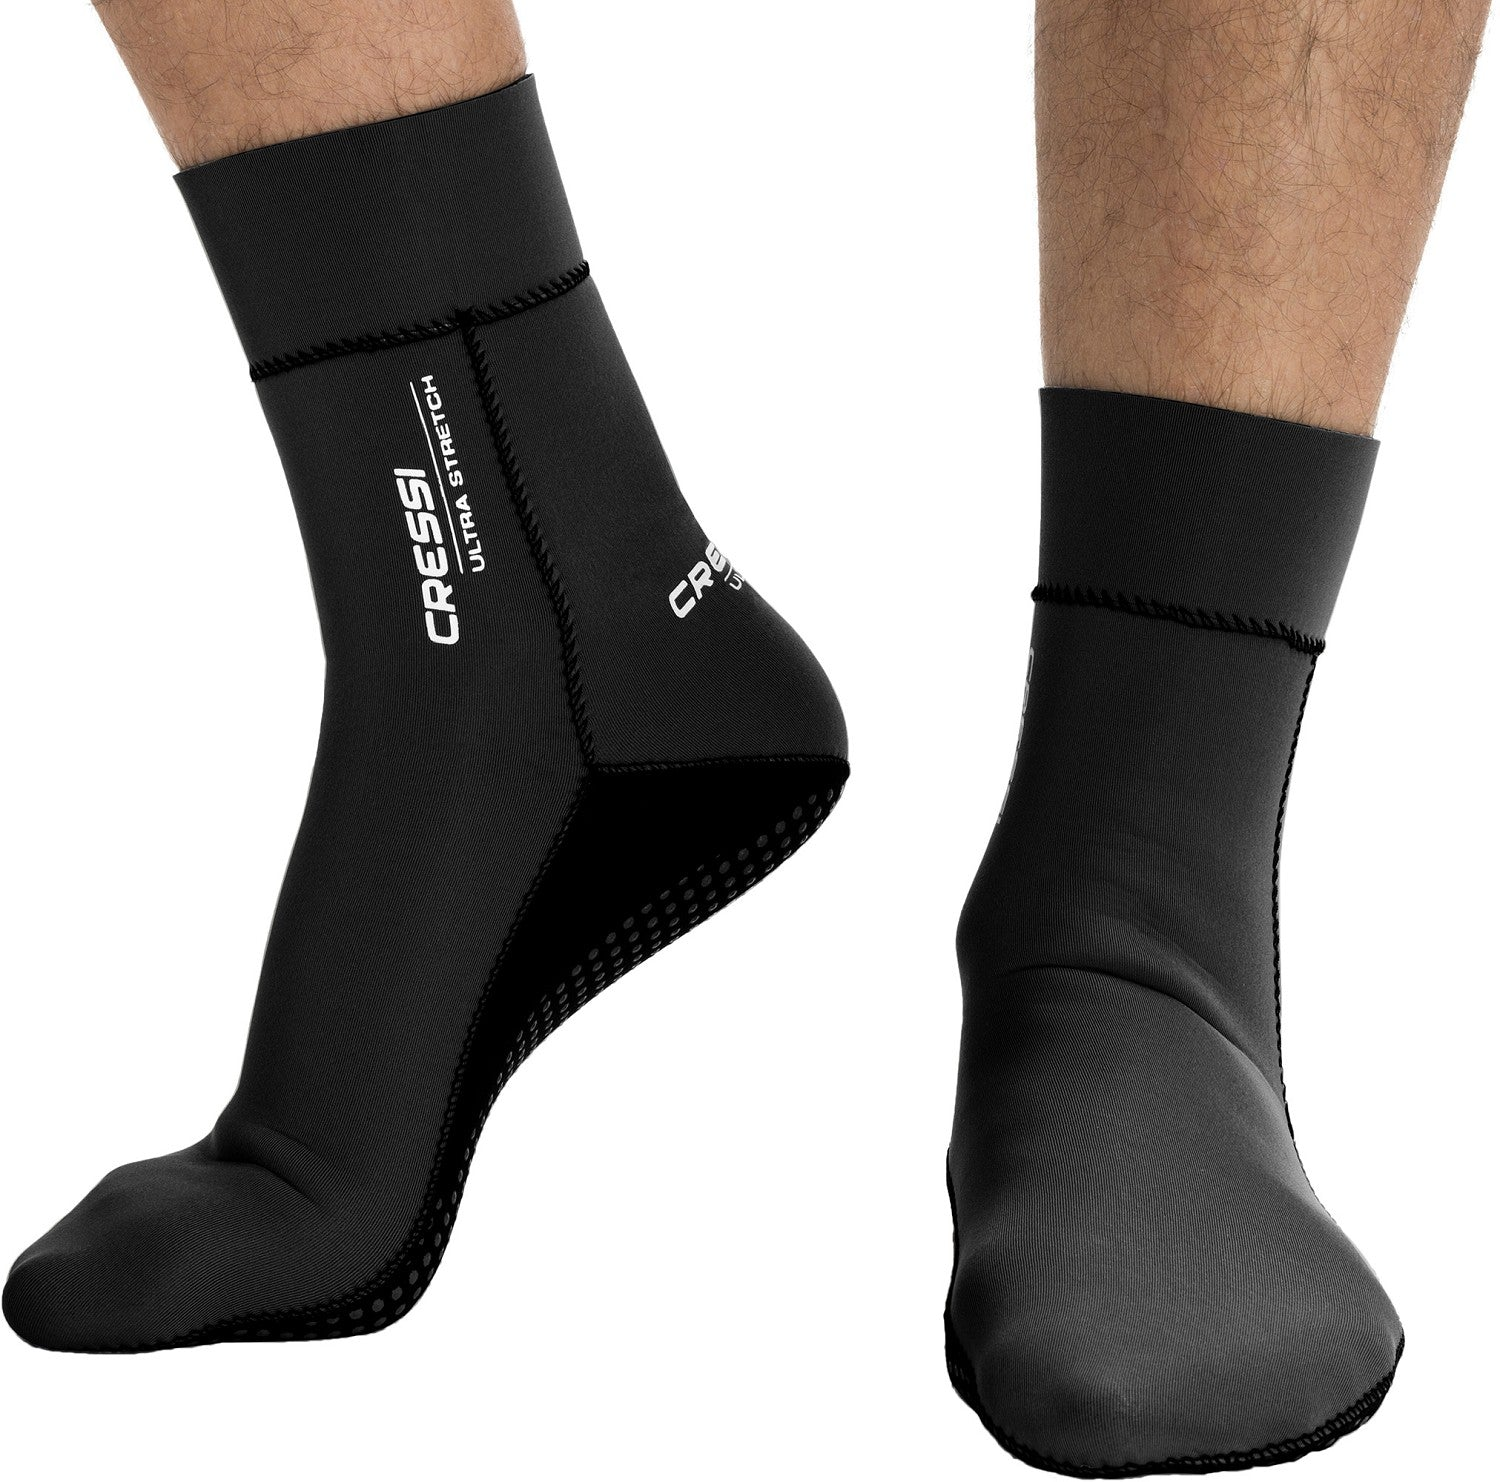 Cressi Ultra Stretch Neoprene 1.5mm Sock / Black / Black / M